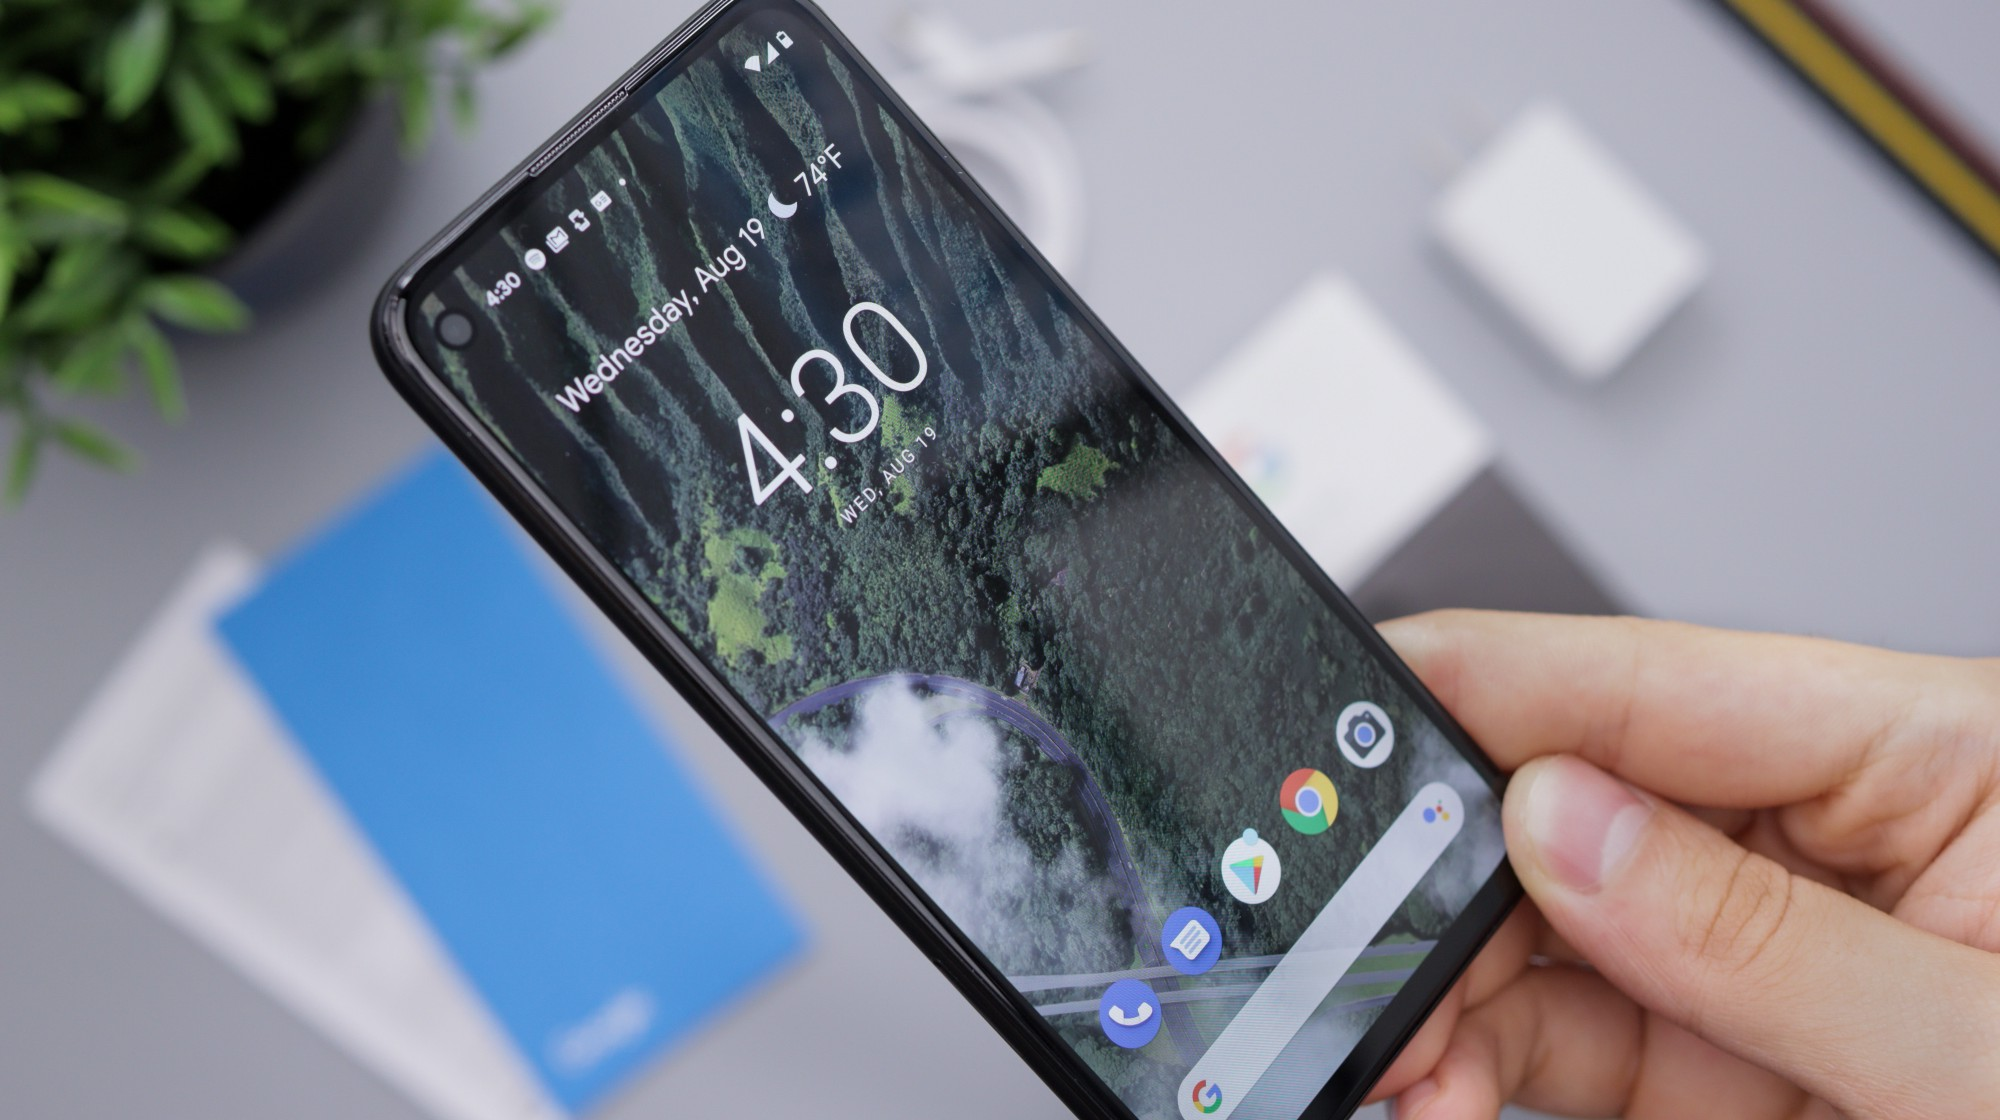 Android 10 running on Google's Pixel 4a